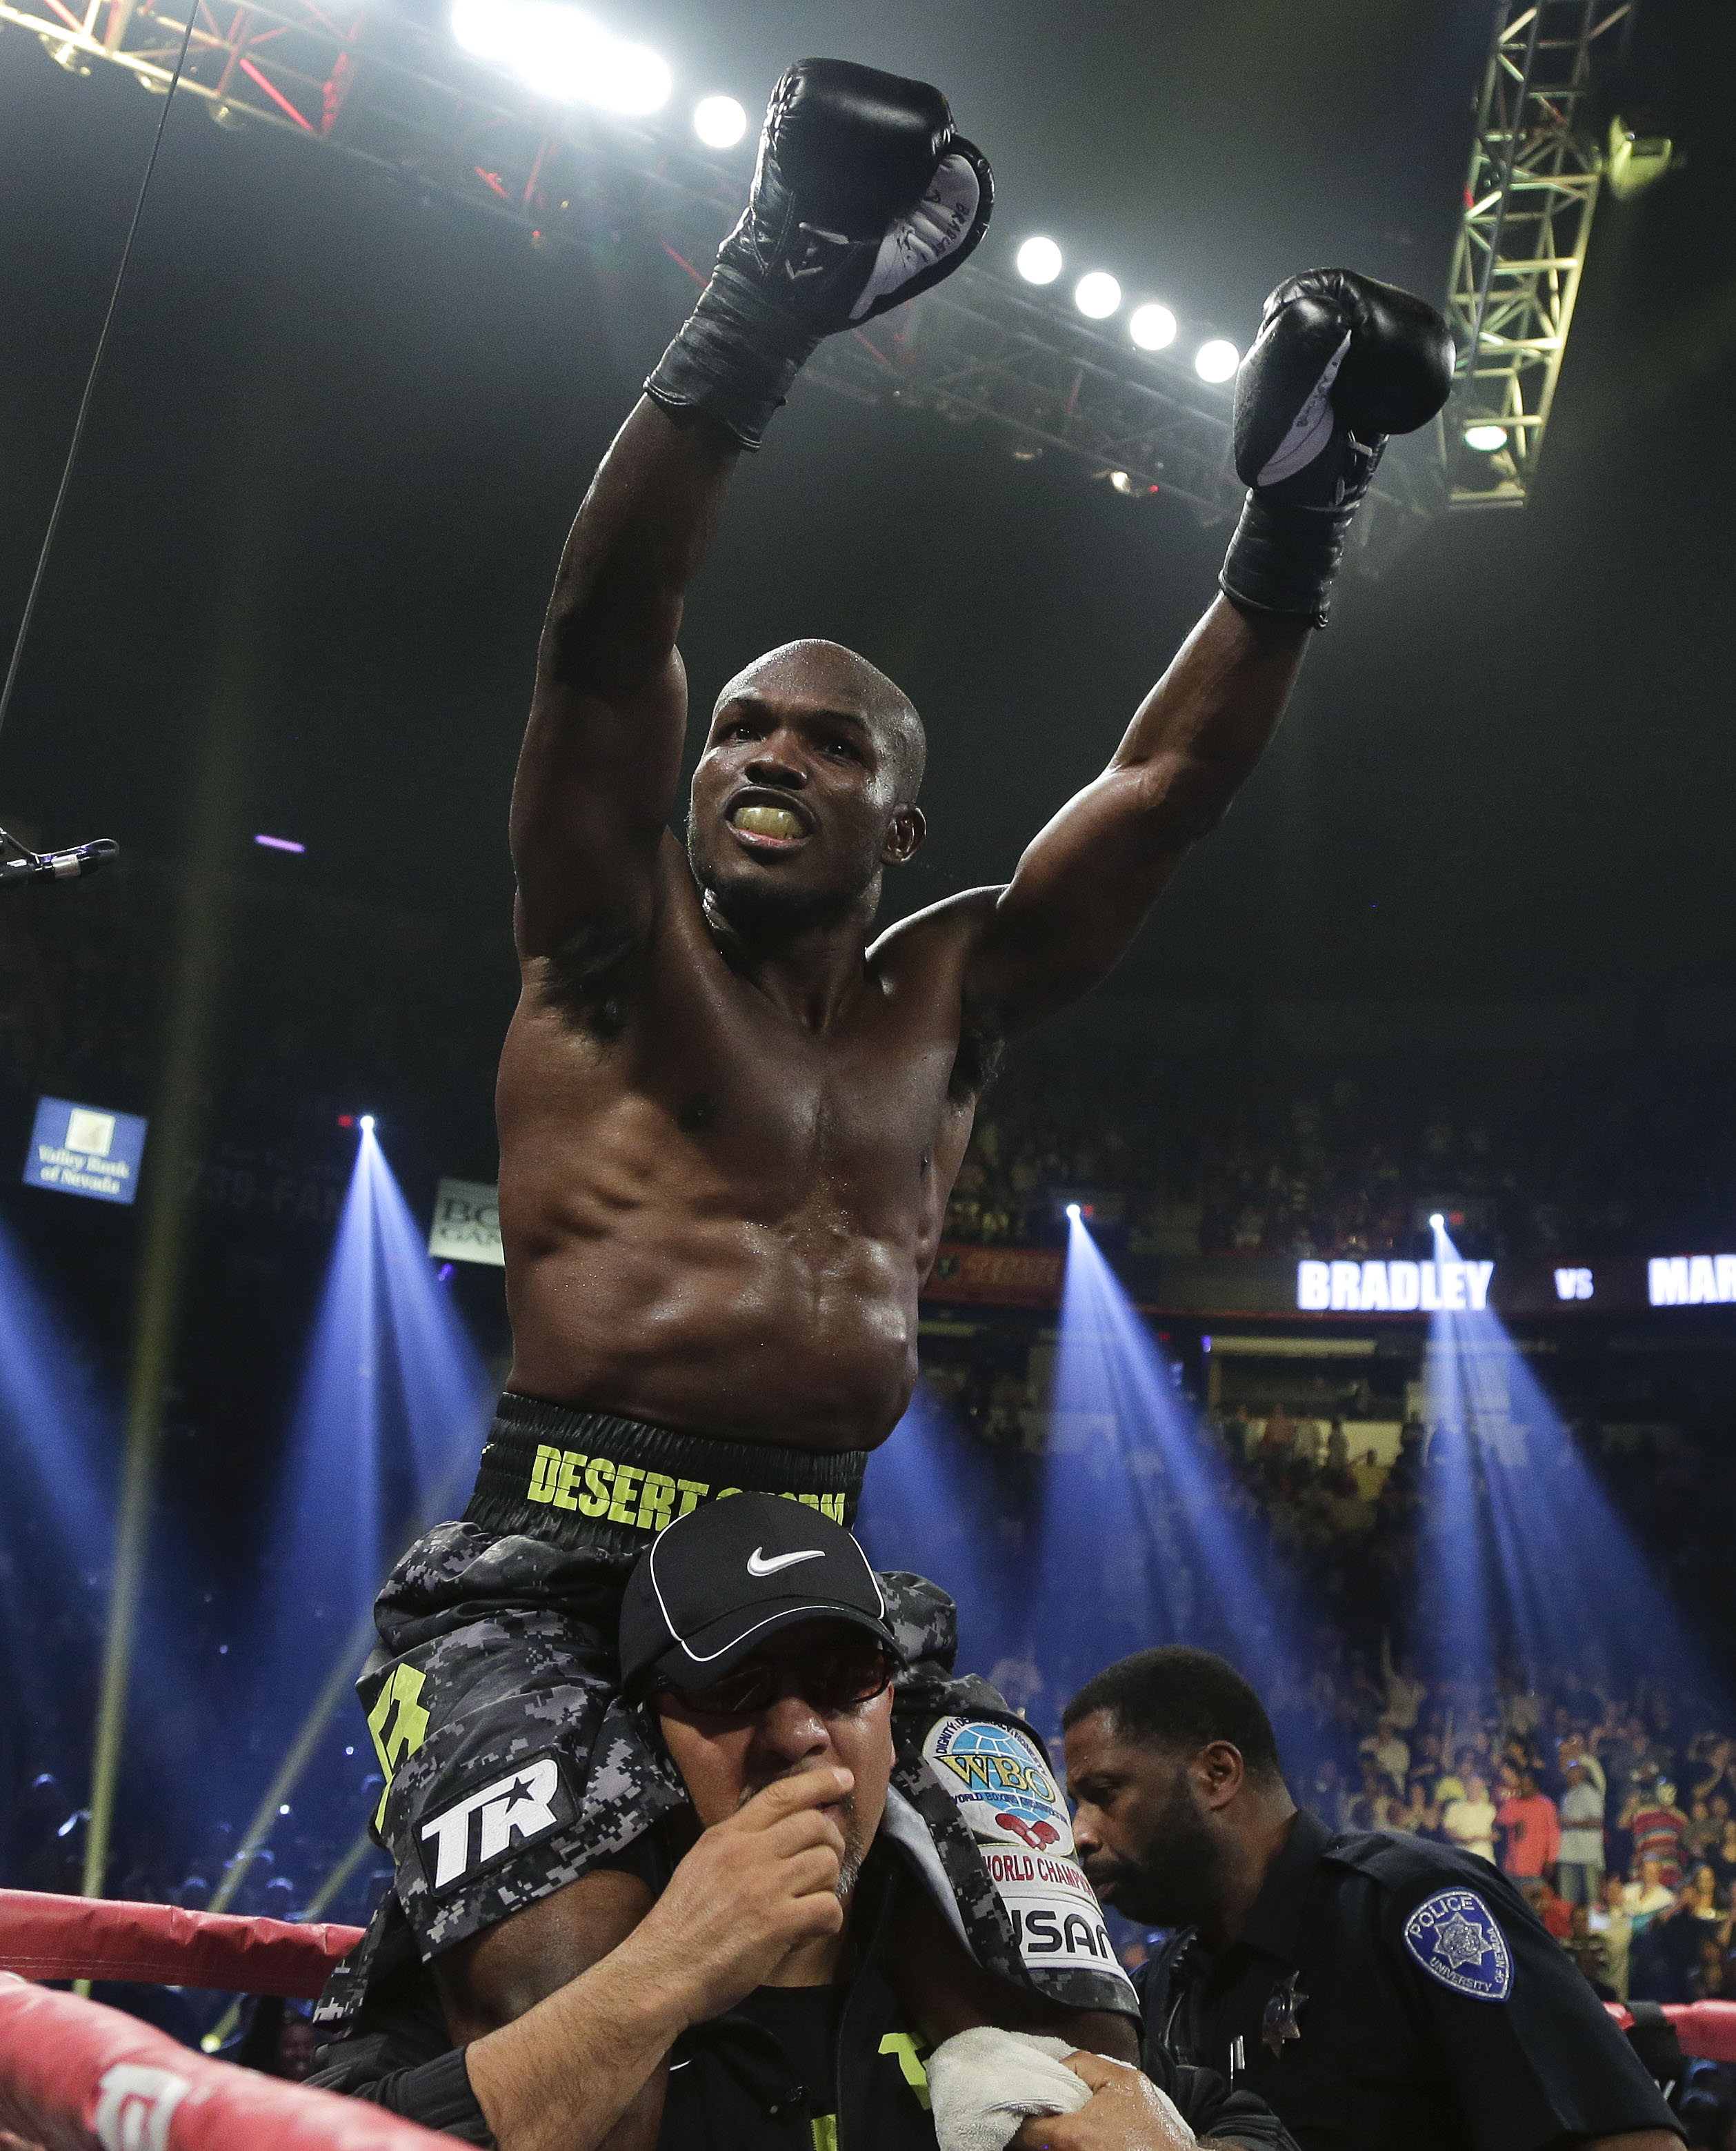 Timothy Bradley celebrates after defeating Juan Manuel Marquez by split decision during a WBO welterweight title fight, Saturday, Oct. 12, 2013, in Las Vegas